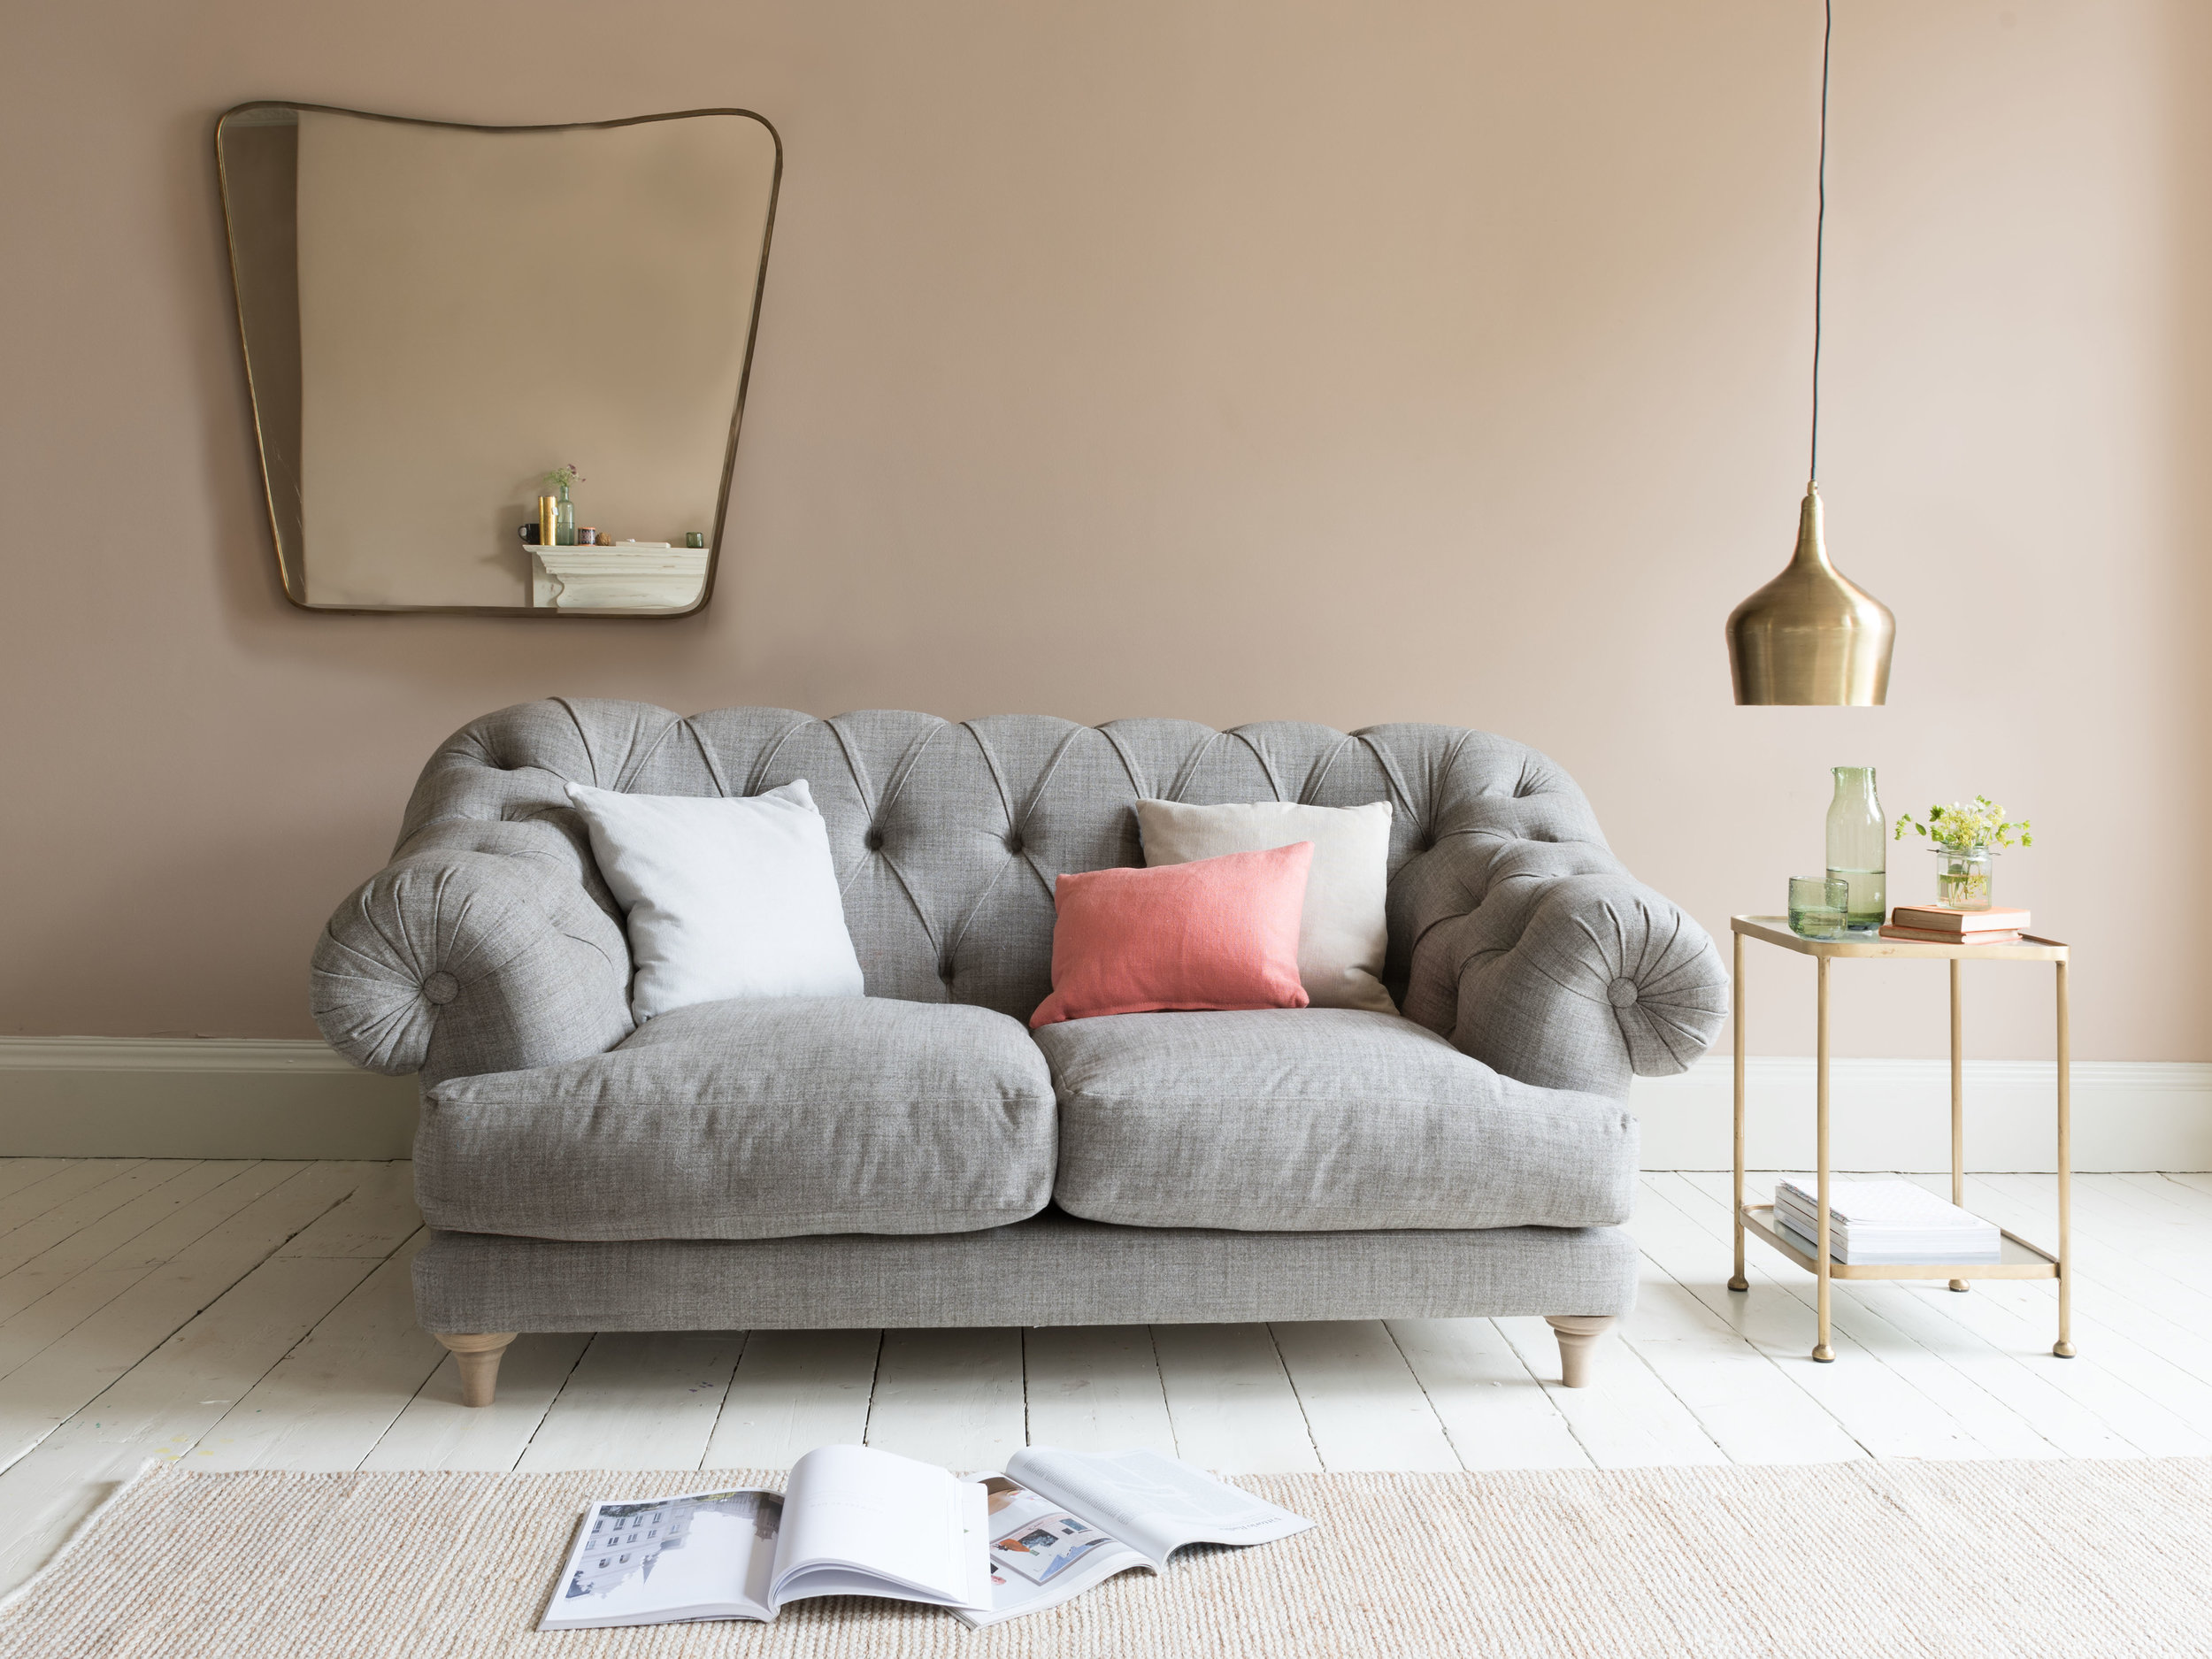 Loaf - Bagsie sofa from £1695 high res.jpg